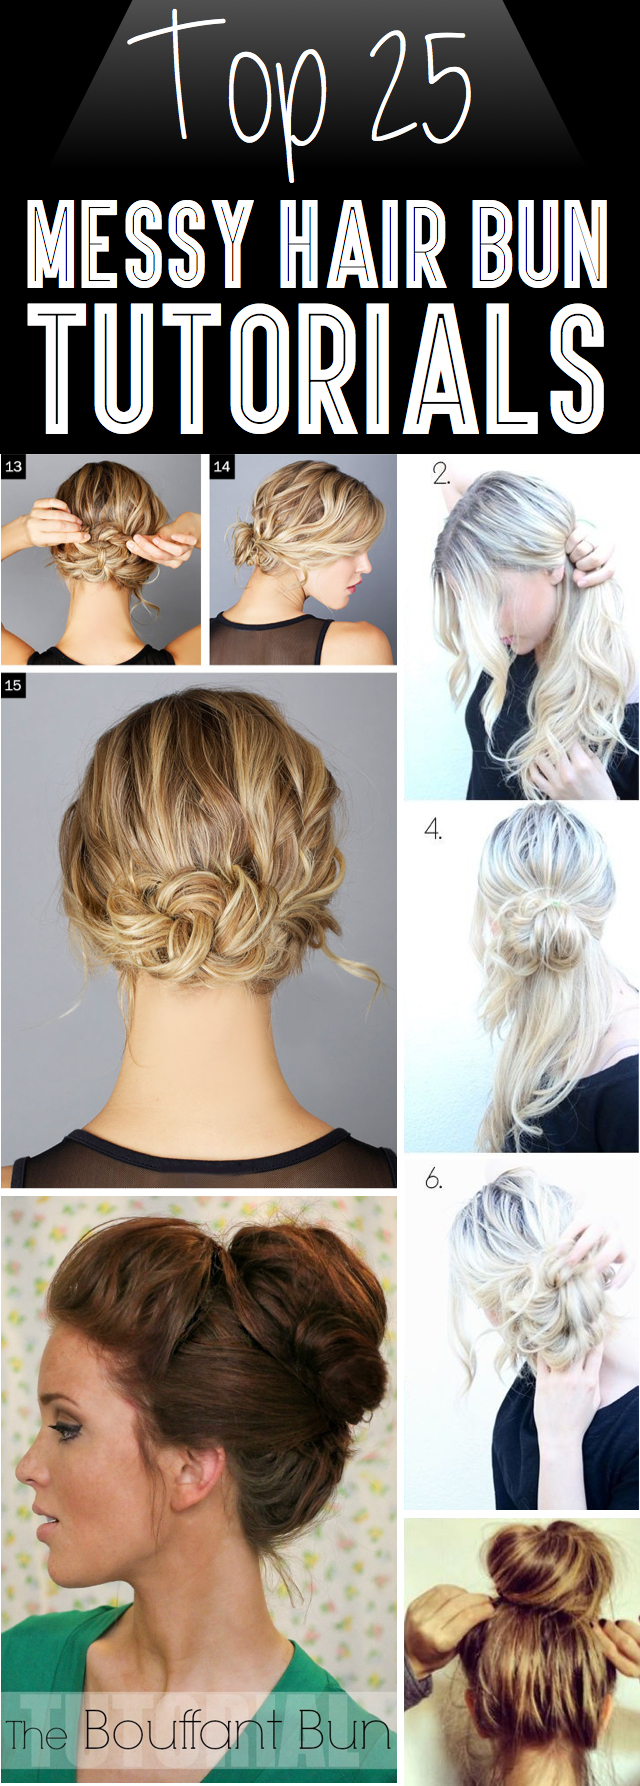 Top 25 messy hair bun tutorials perfect for those lazy mornings top 25 messy hair bun tutorials perfect for those lazy mornings baditri Image collections